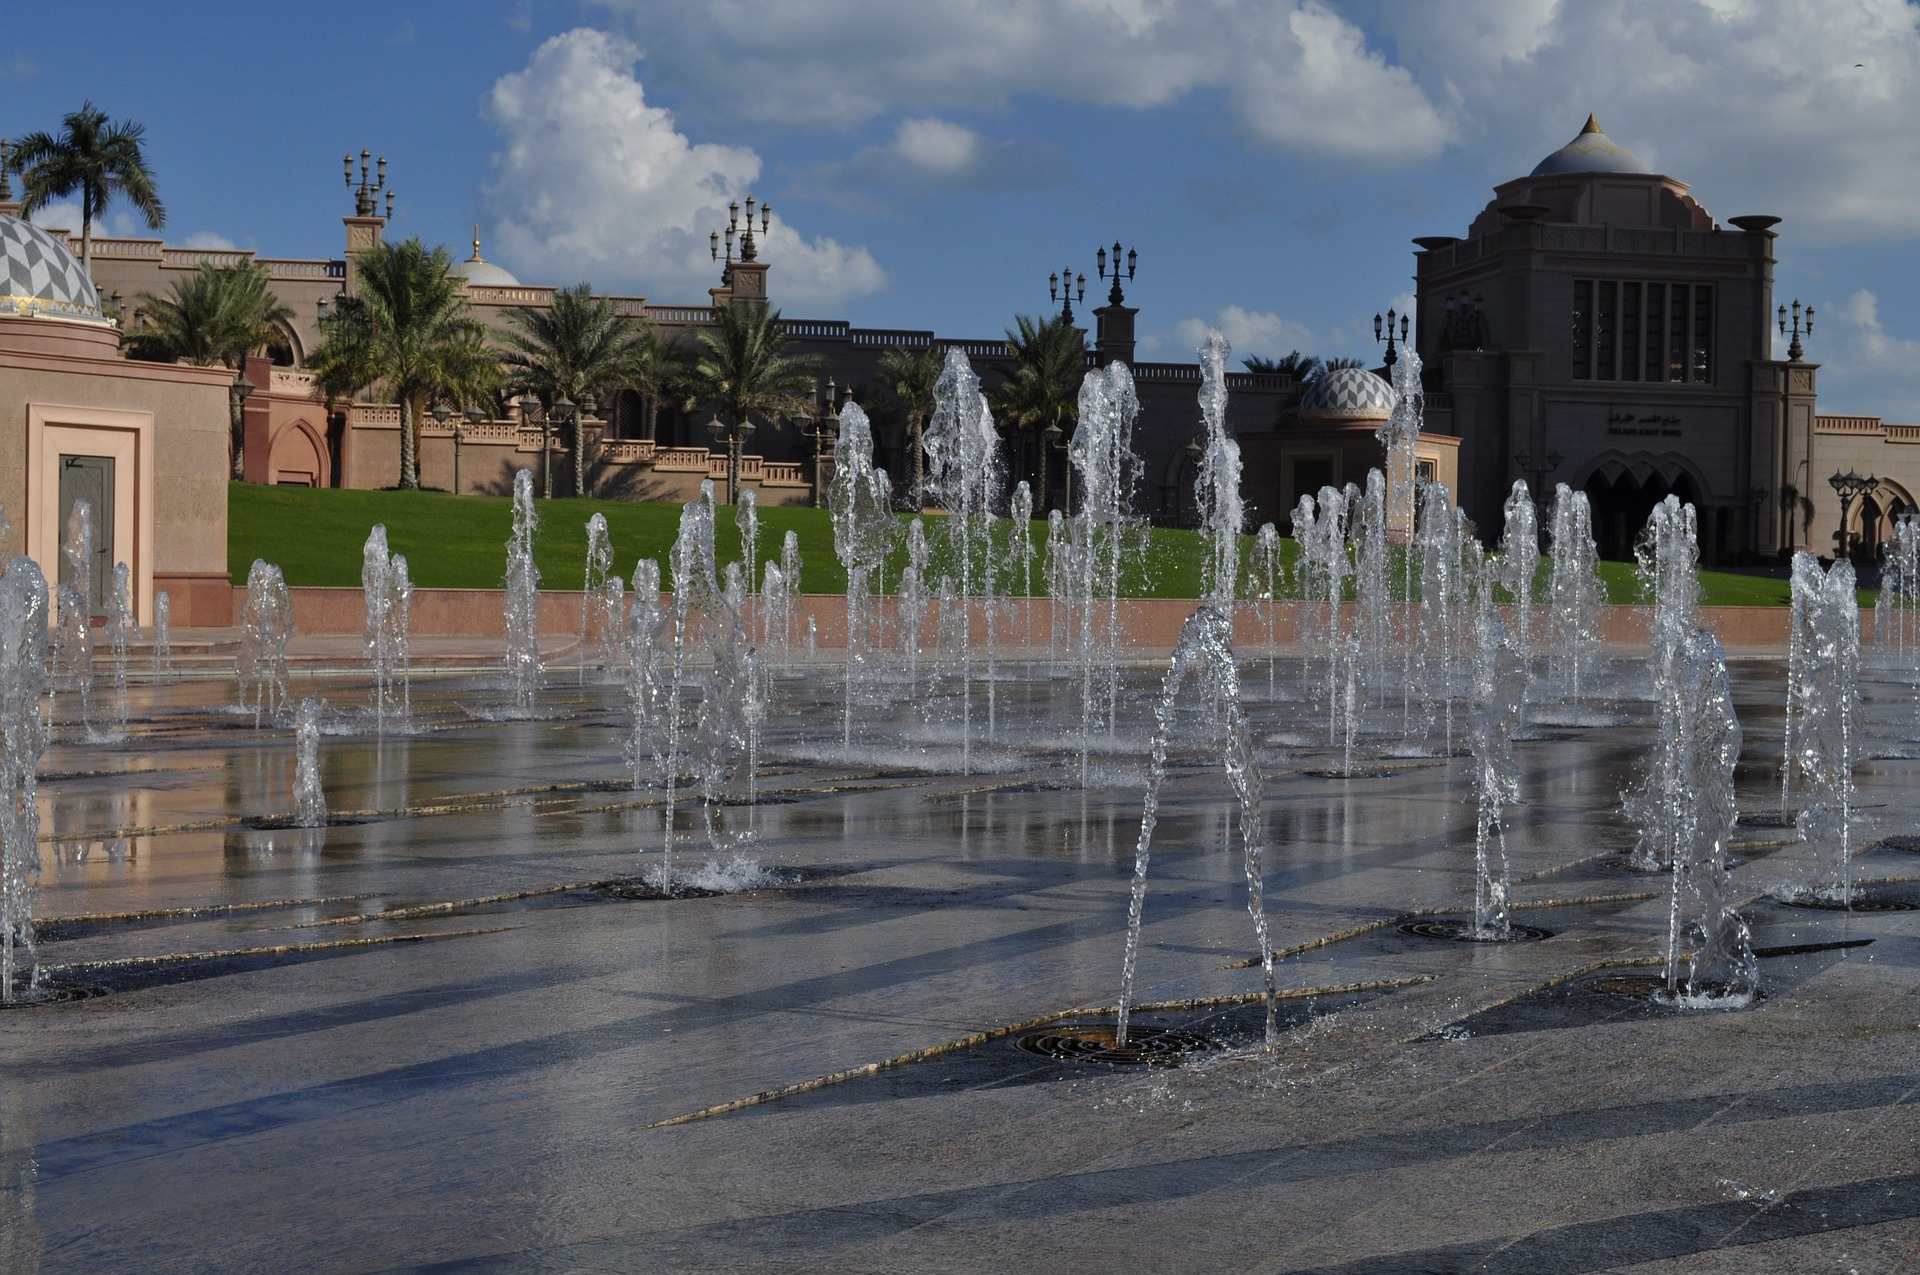 Water fountain at Emirates Palace Hotel l in Abu Dhabi, UAE